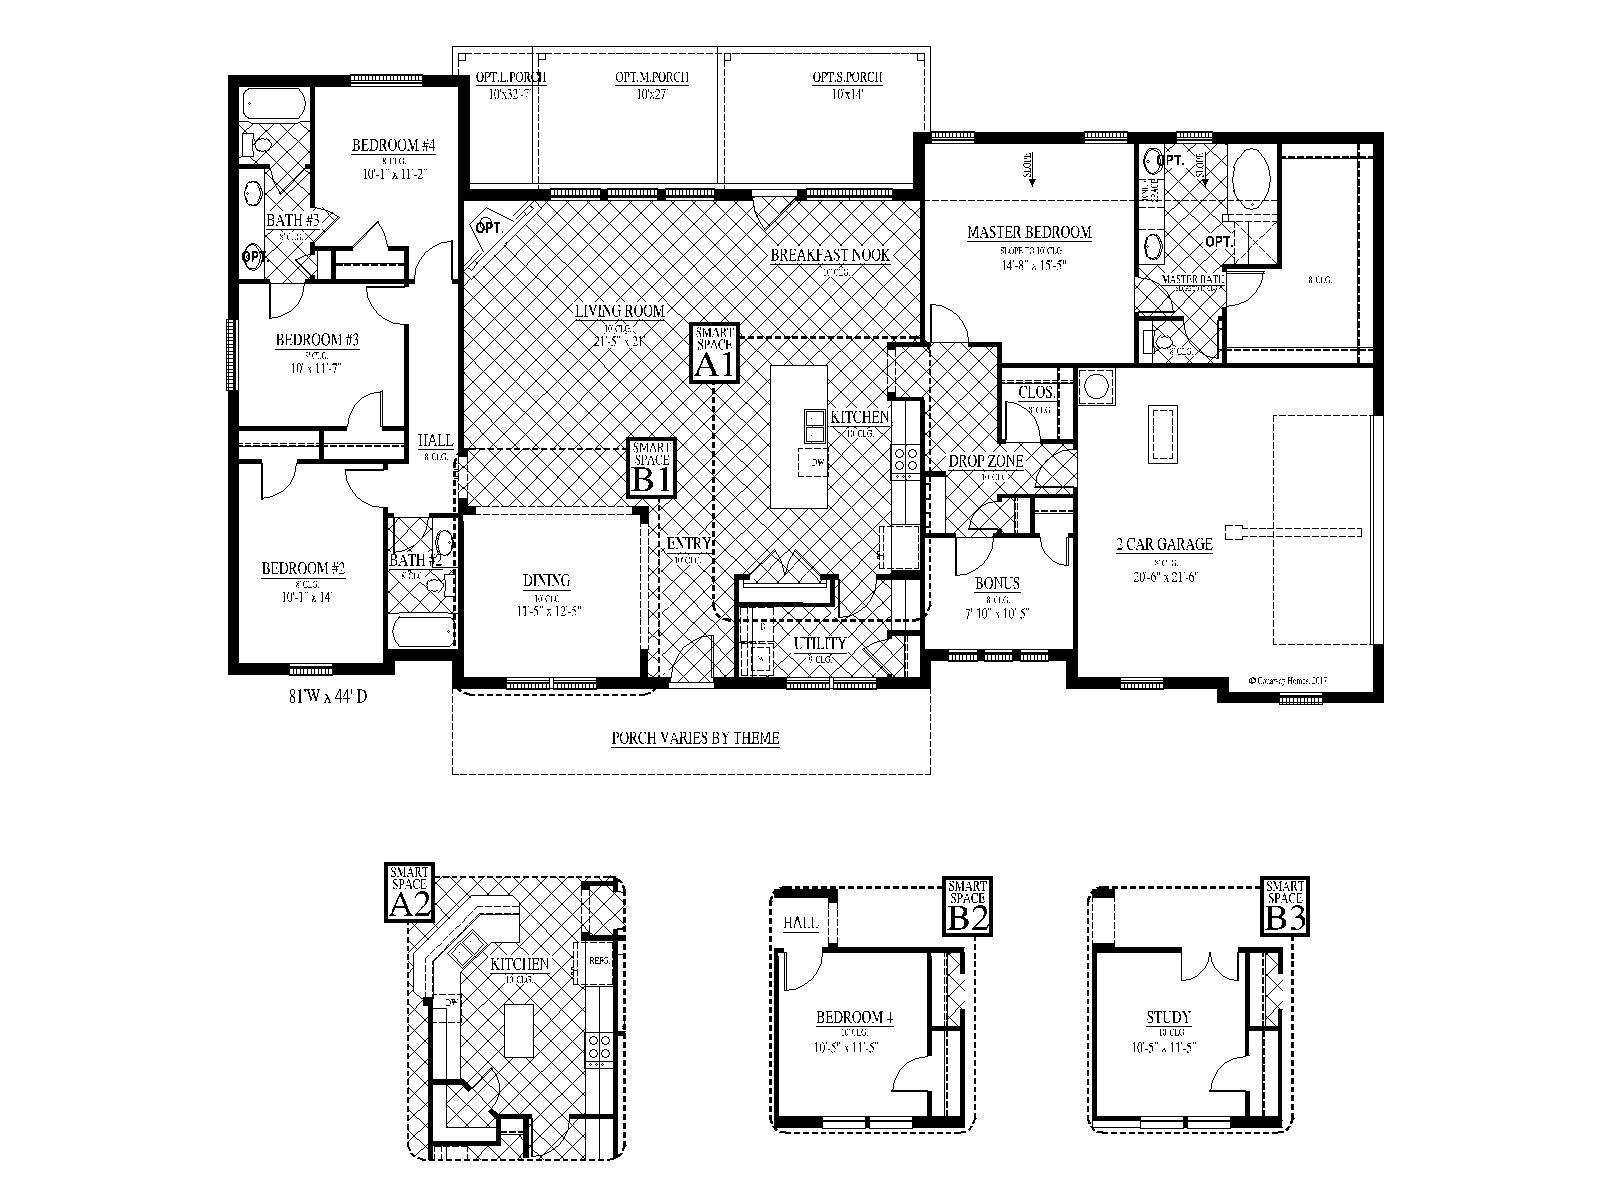 [FLEX PLAN] Highland-II Floorplan